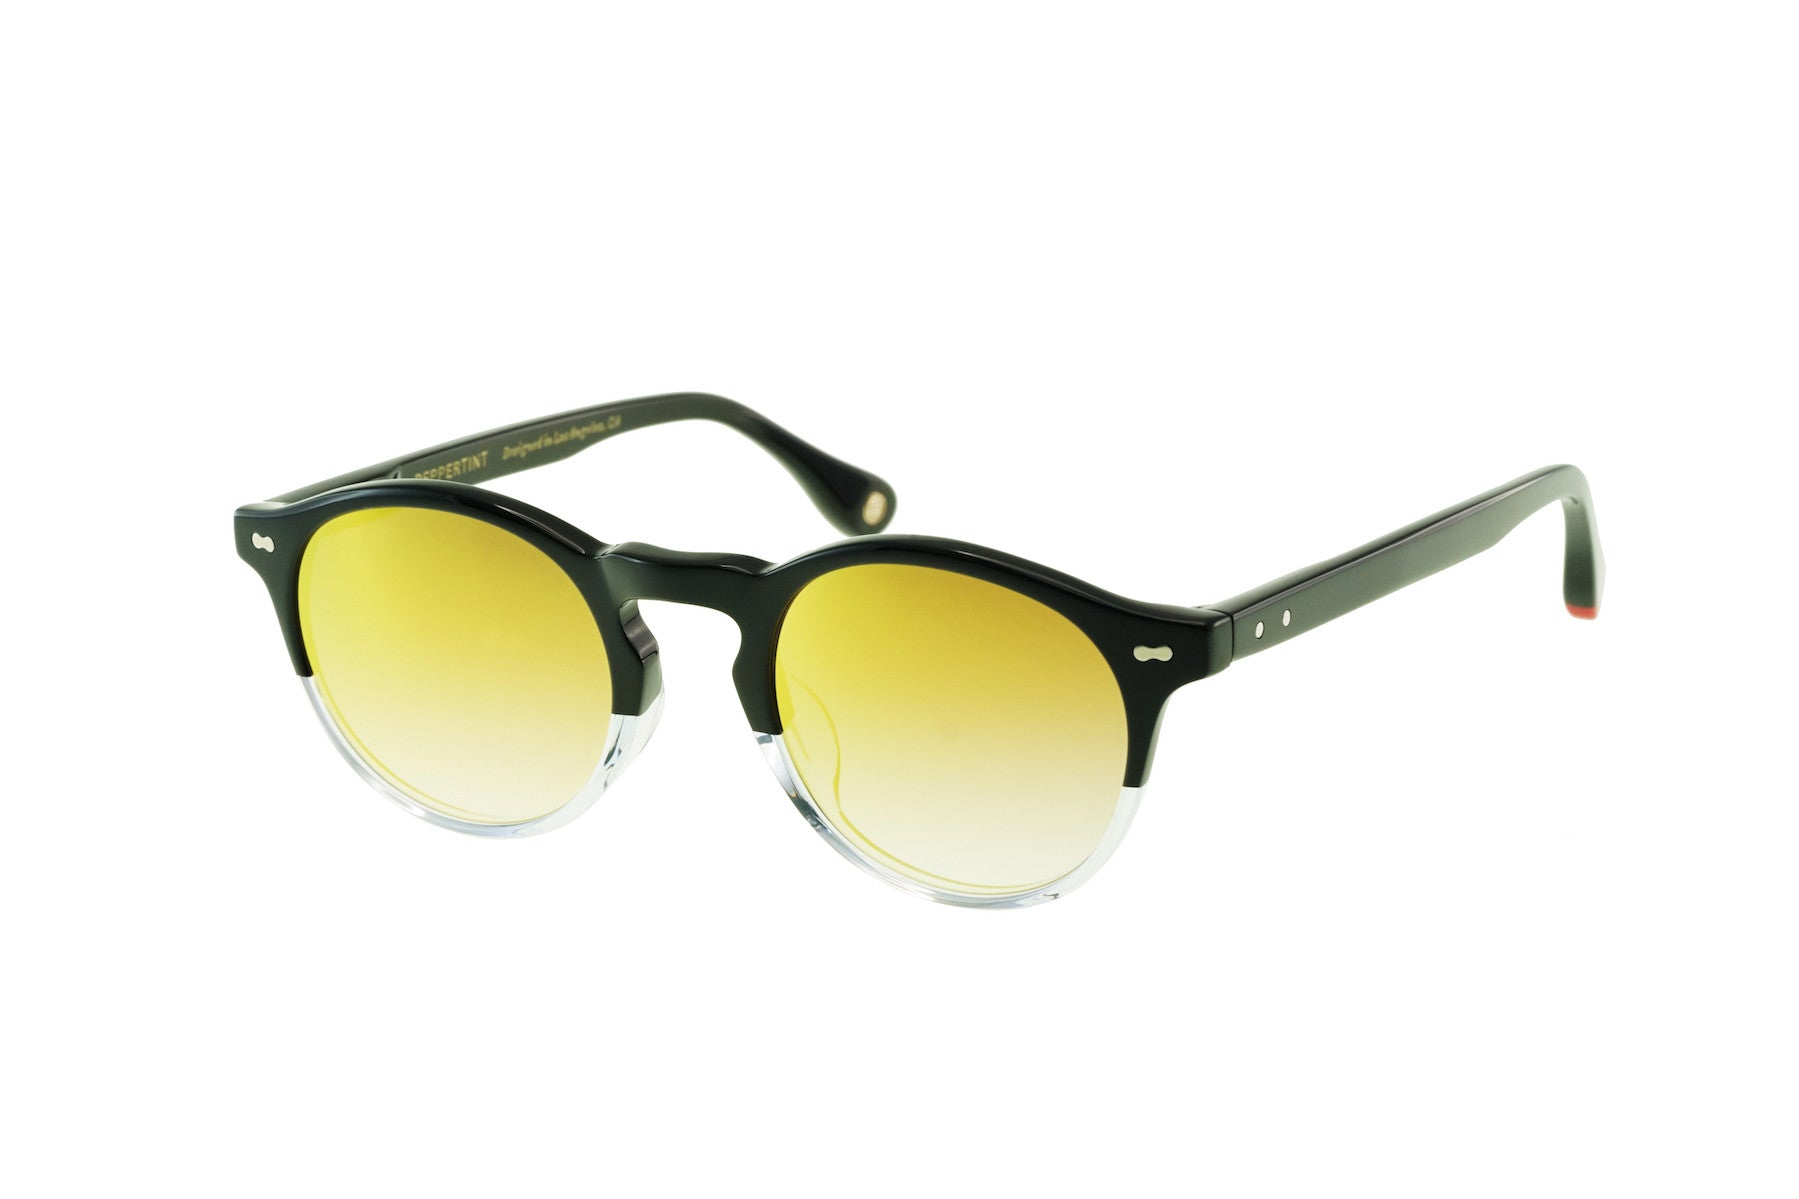 Grand 922 - Peppertint - Designer sunglasses